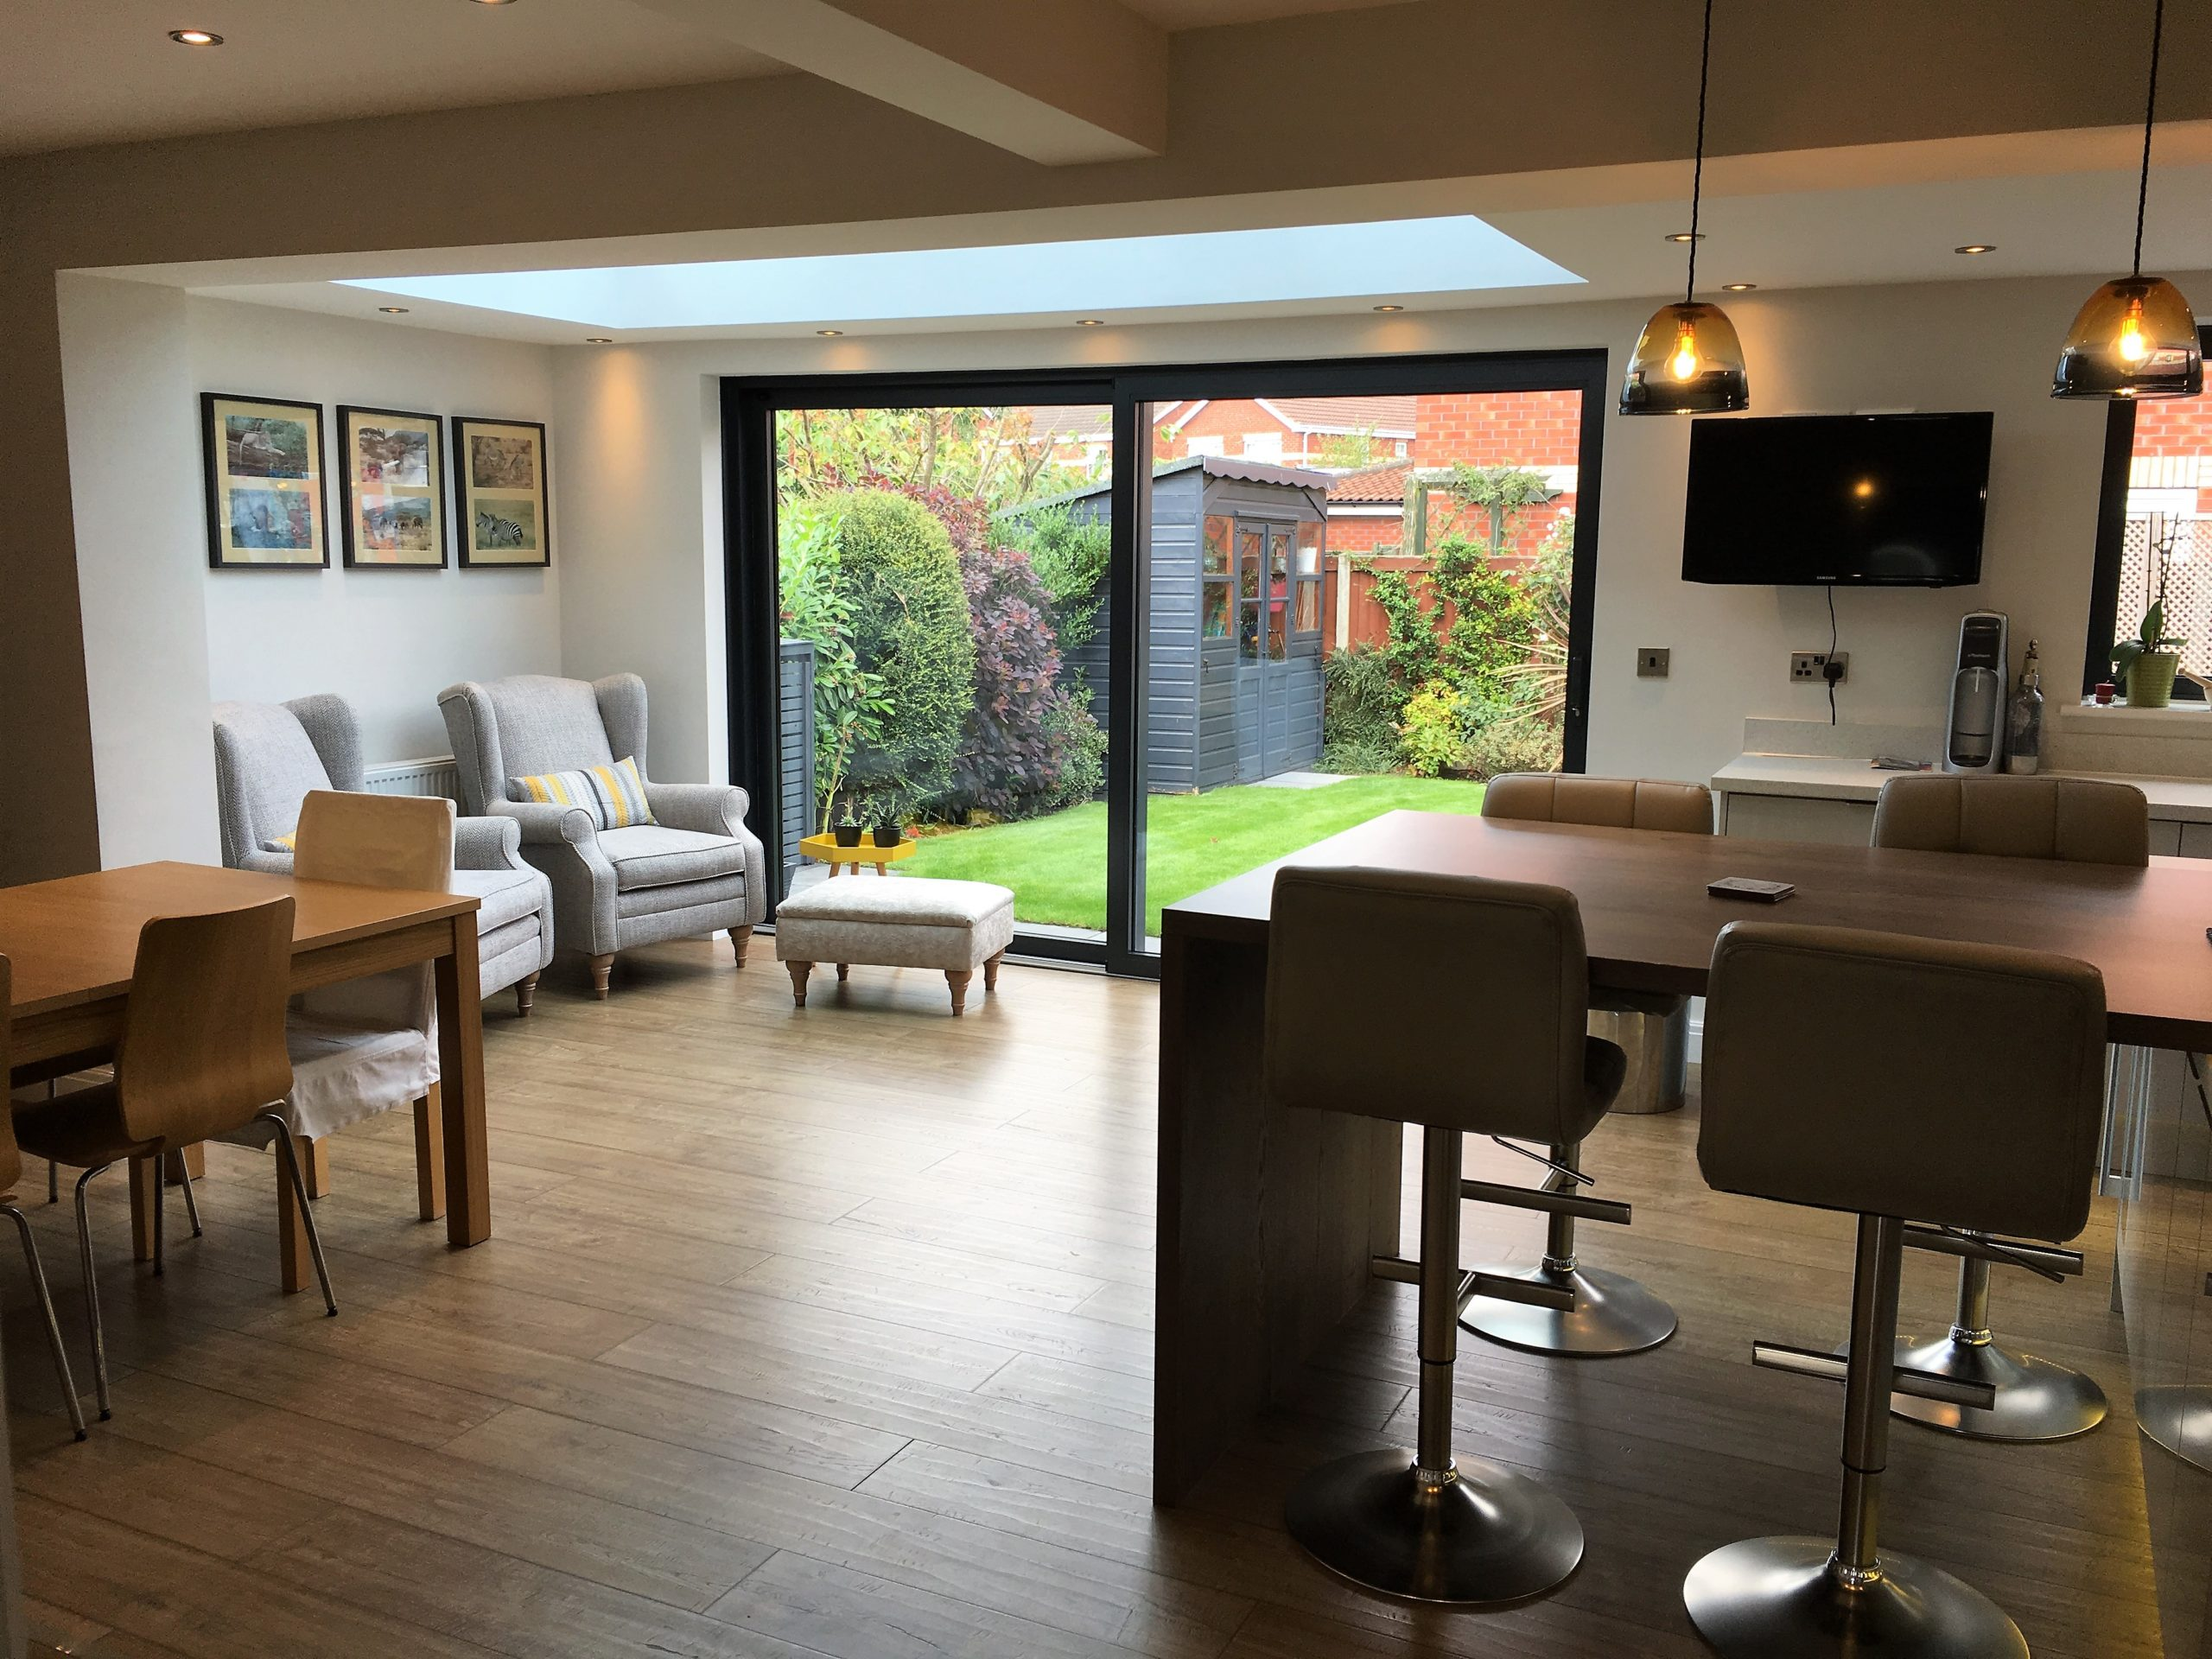 Wide angle view of modern kitchen and living area in a single storey extension